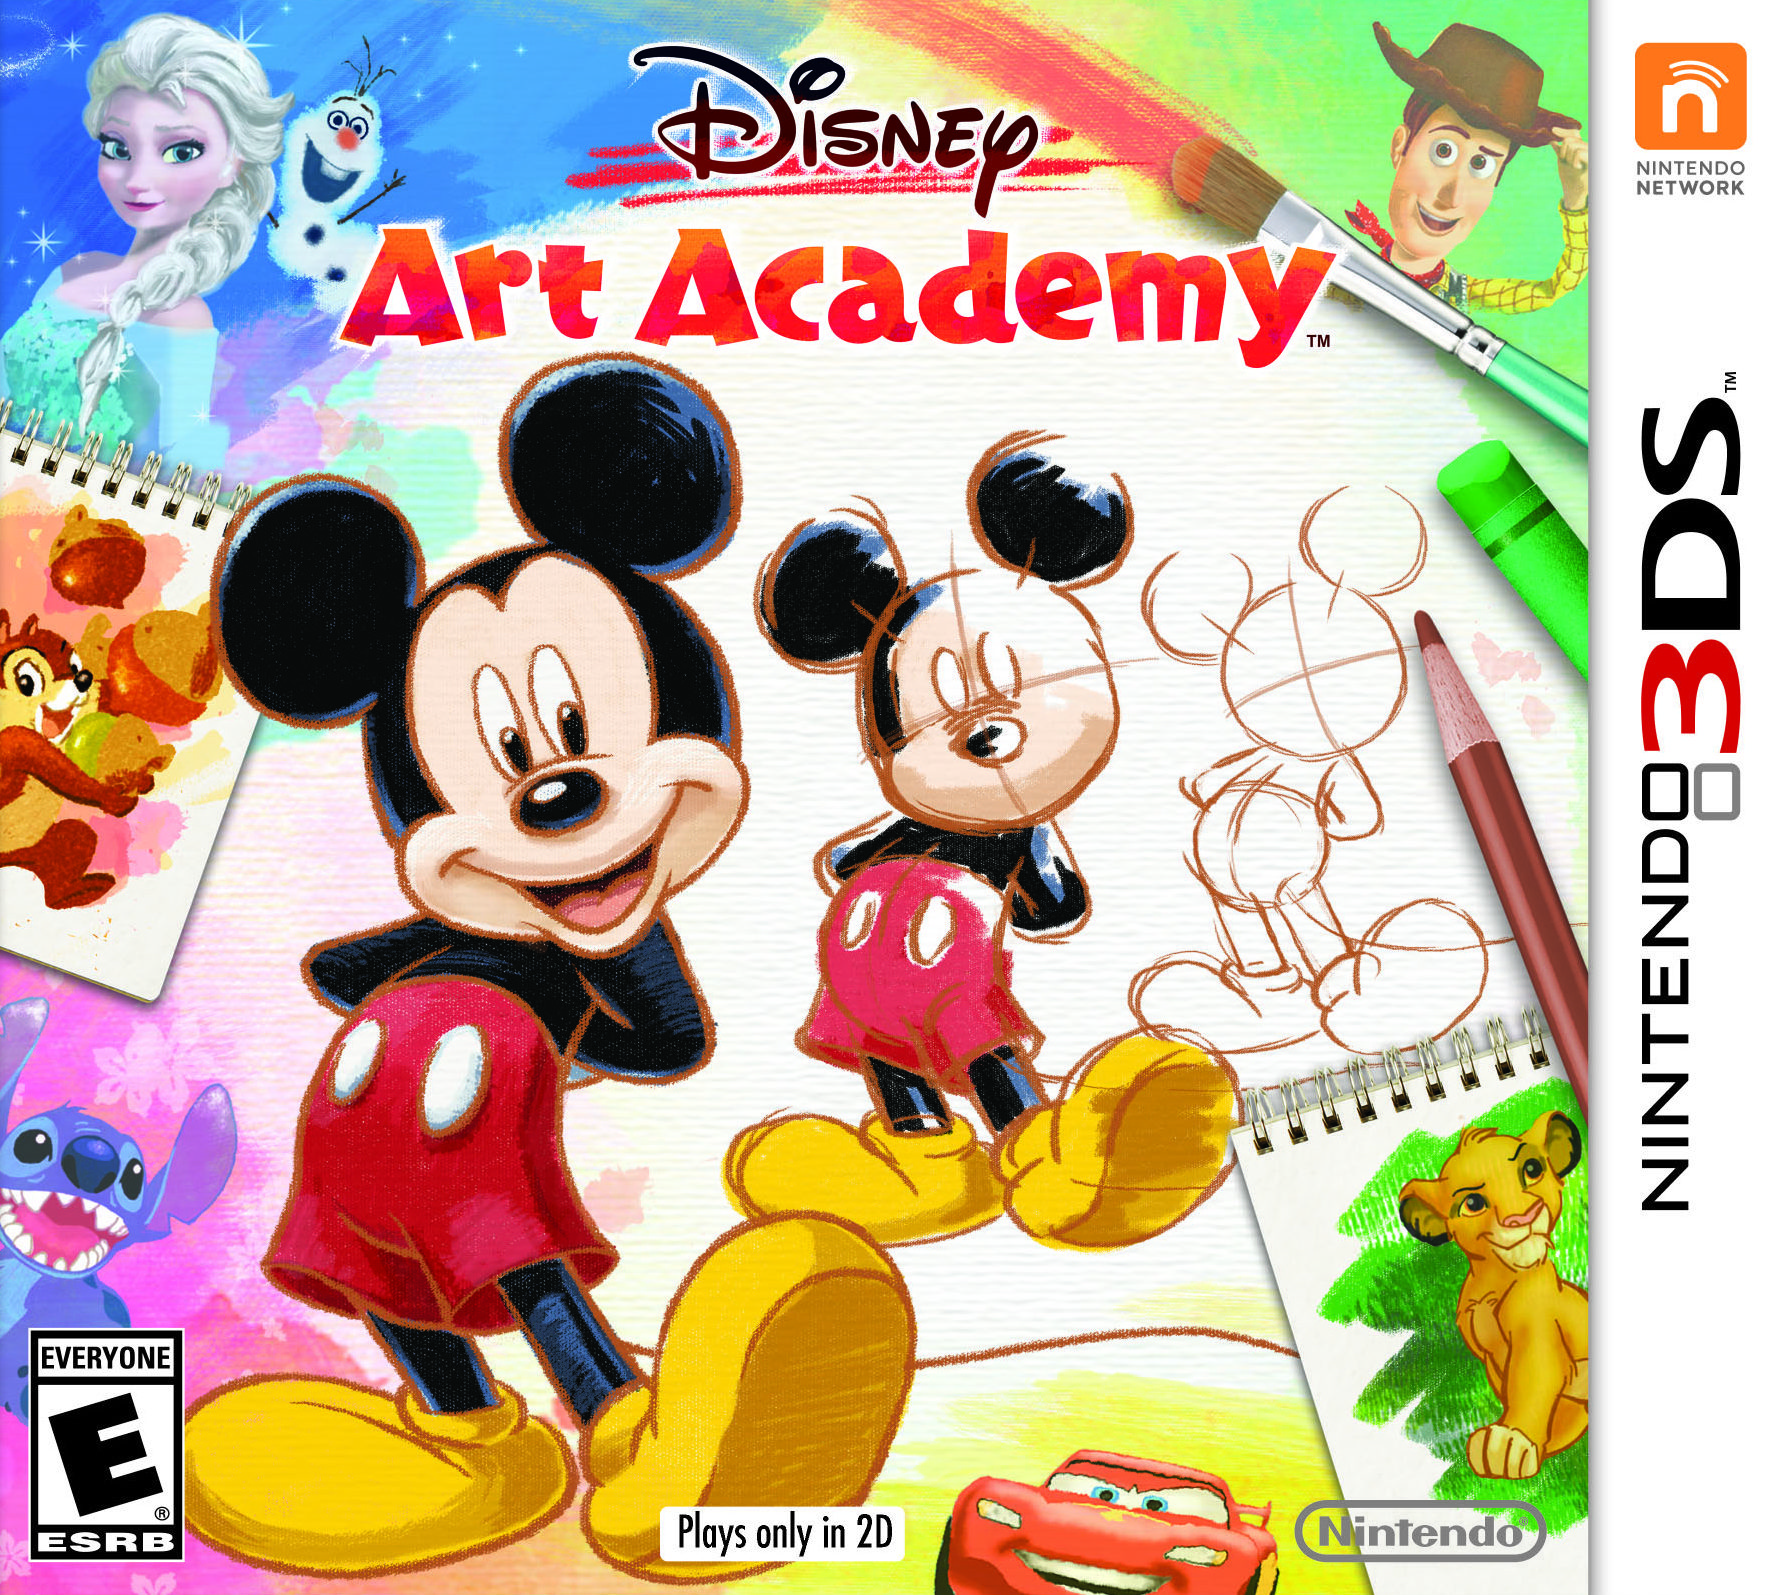 N3DS_DisneyArtAcademy_case_pkg01